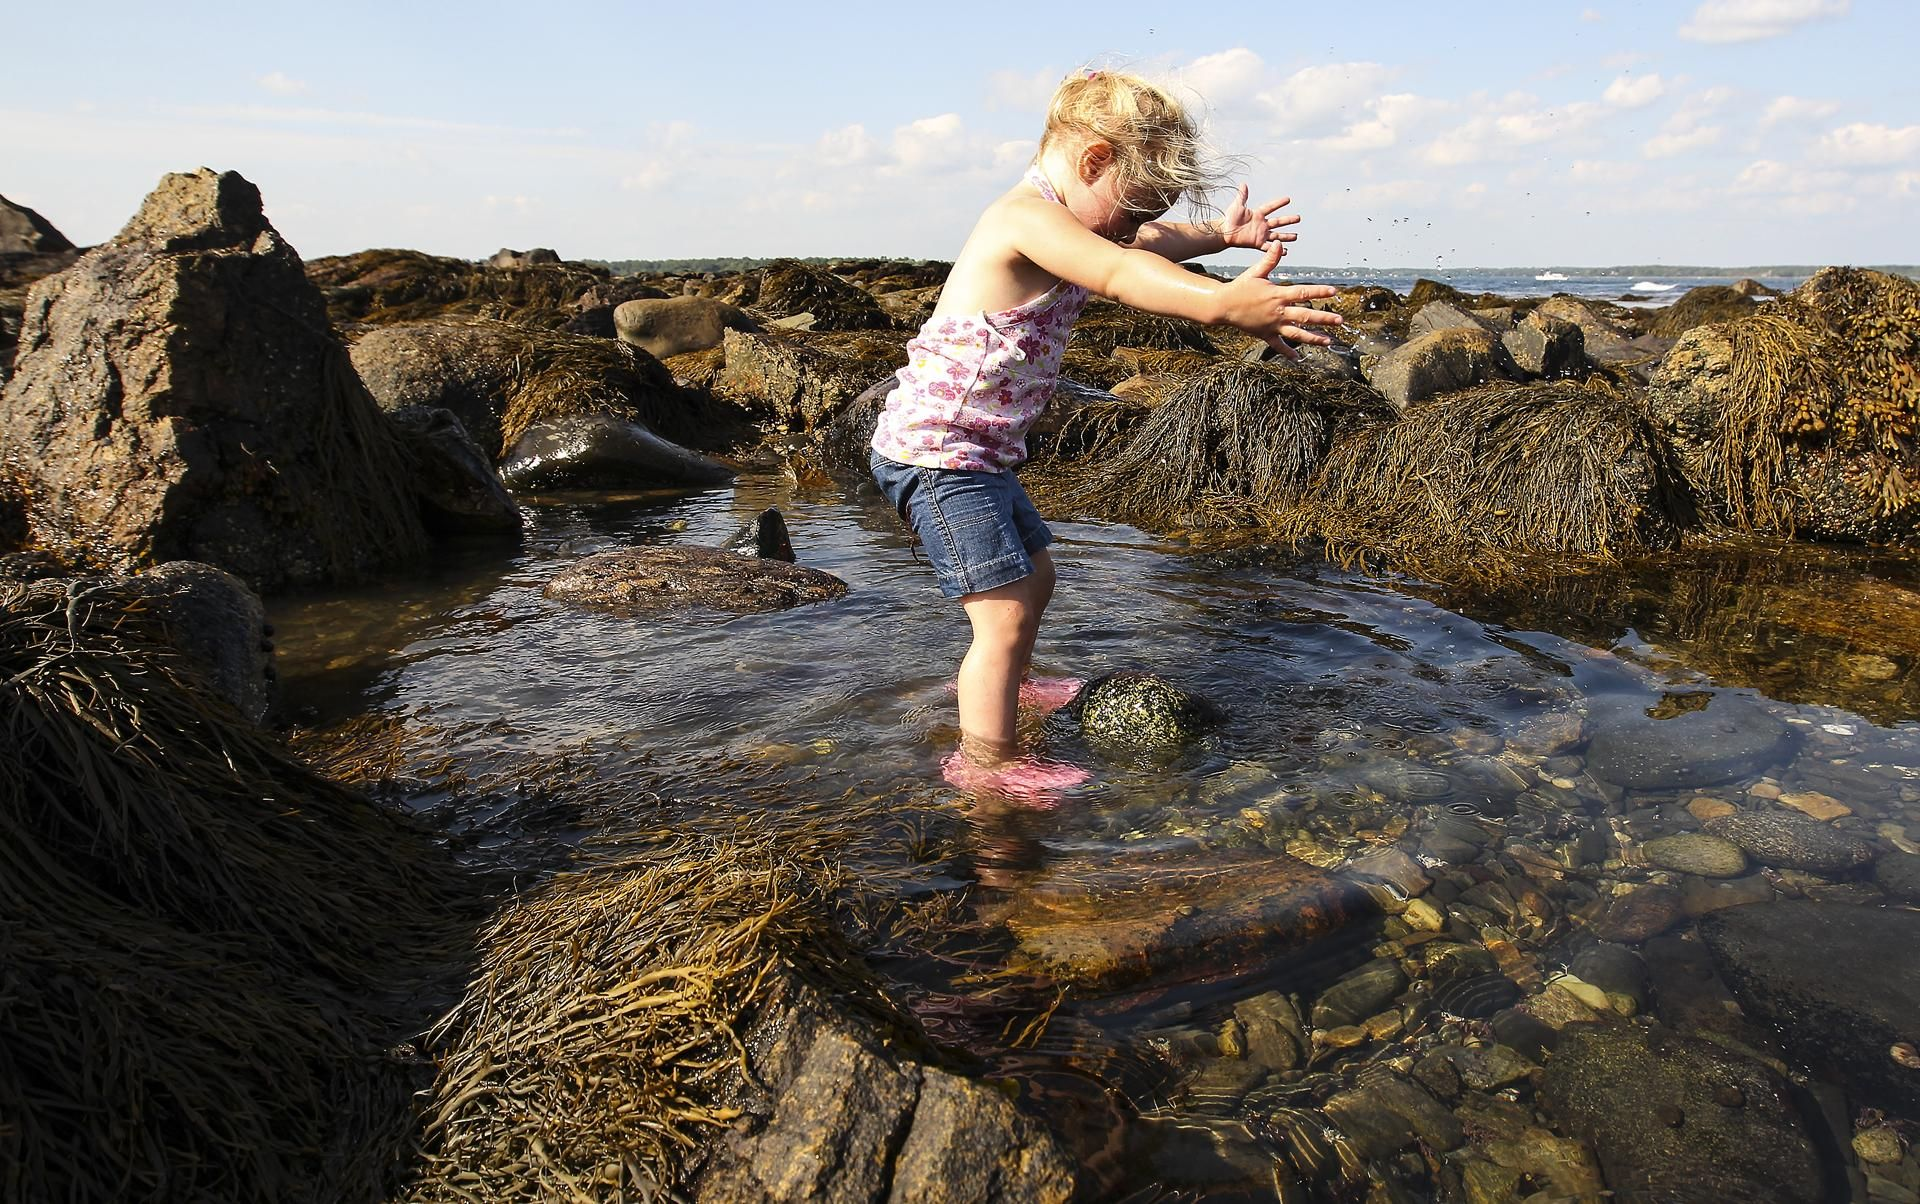 What are the best beaches in new england tide pools beach and park rye nh wednesday aug 27 2014 mckenna dionne 3 nvjuhfo Image collections